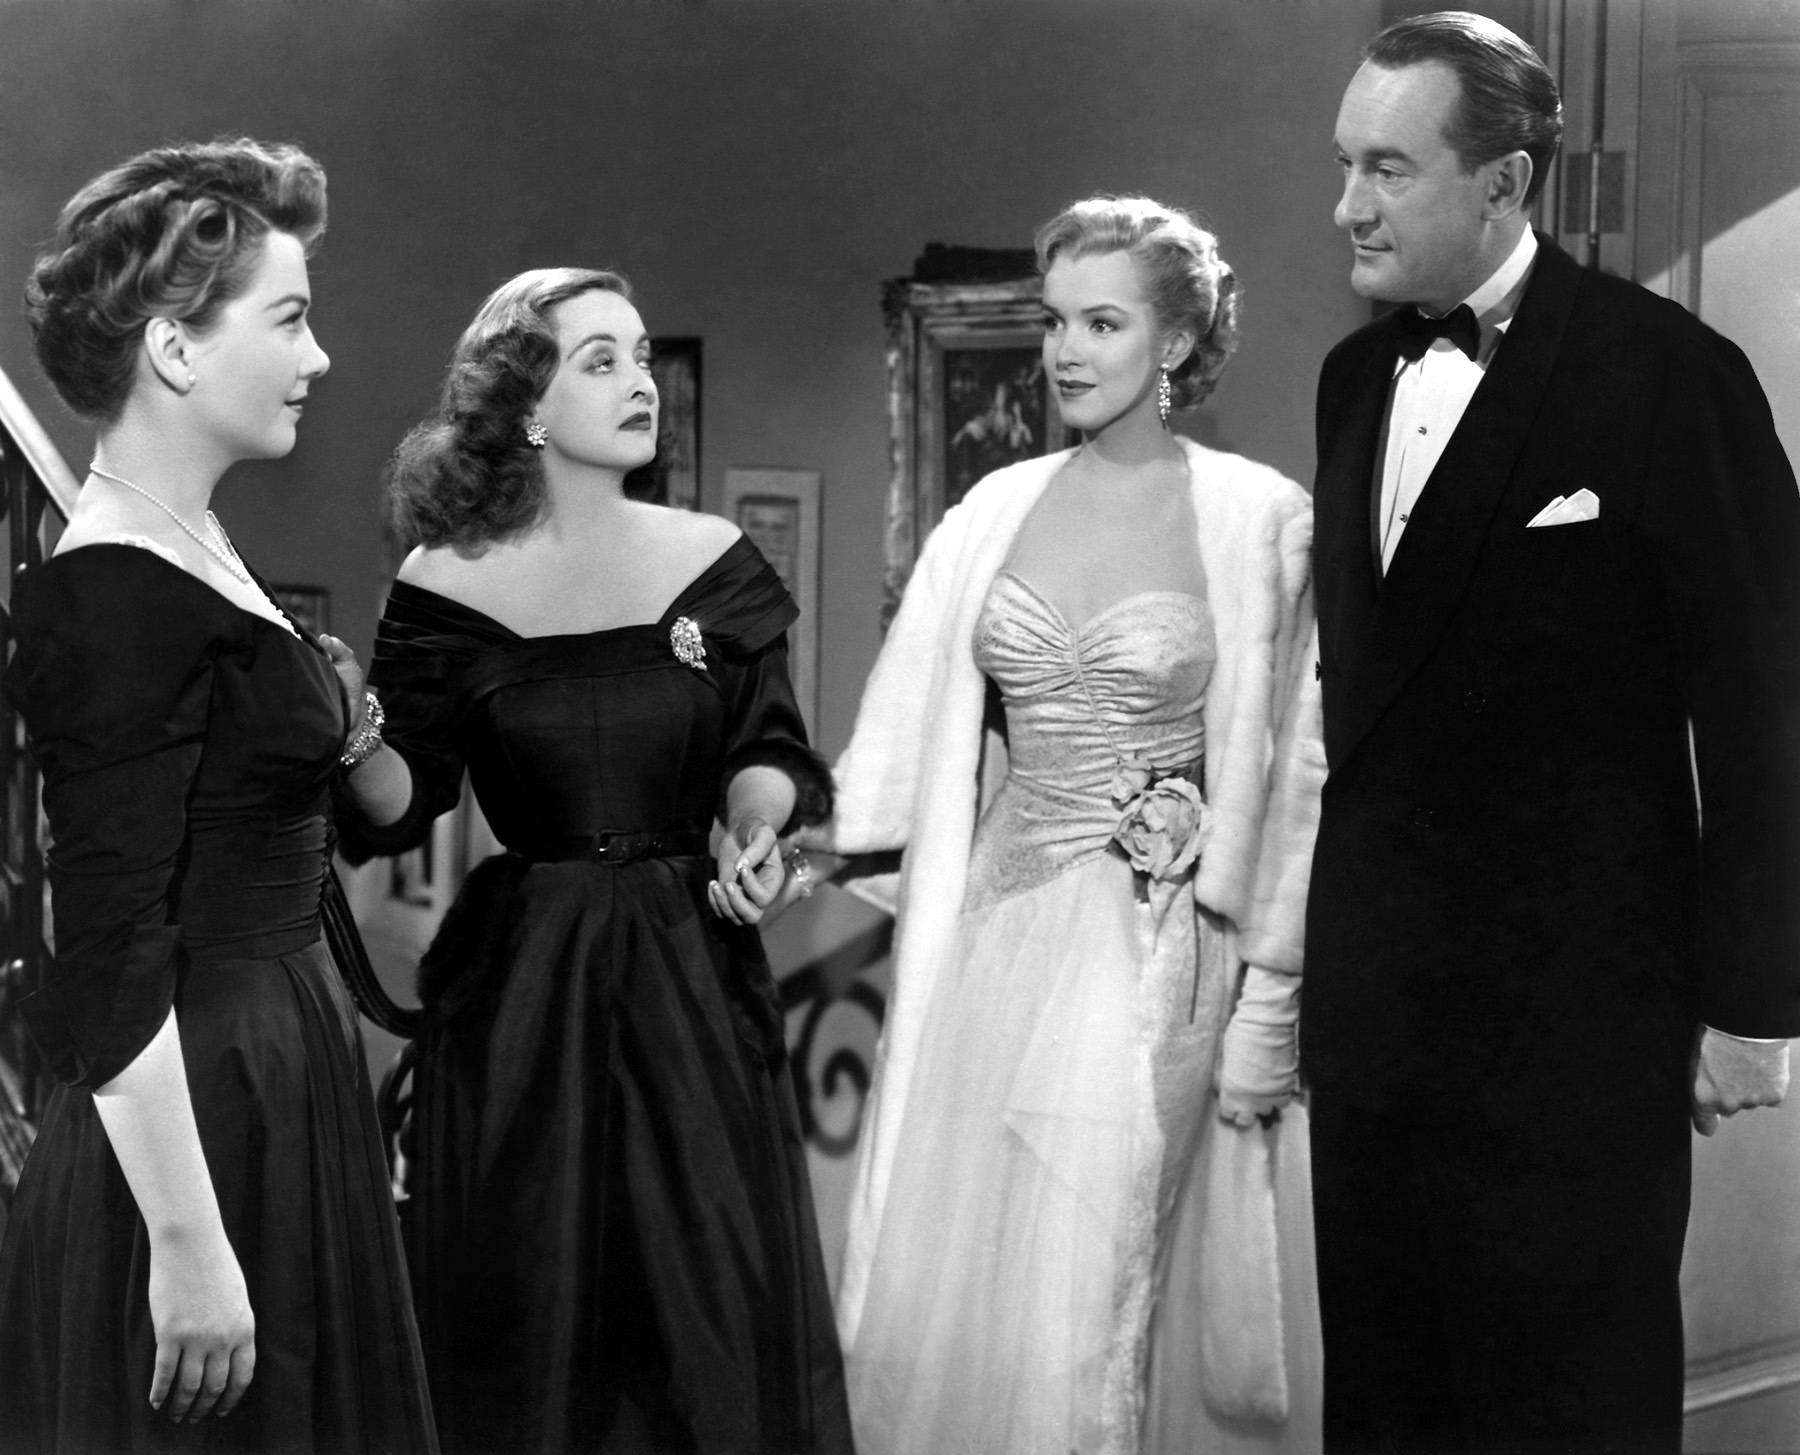 The cast of All About Eve talking.